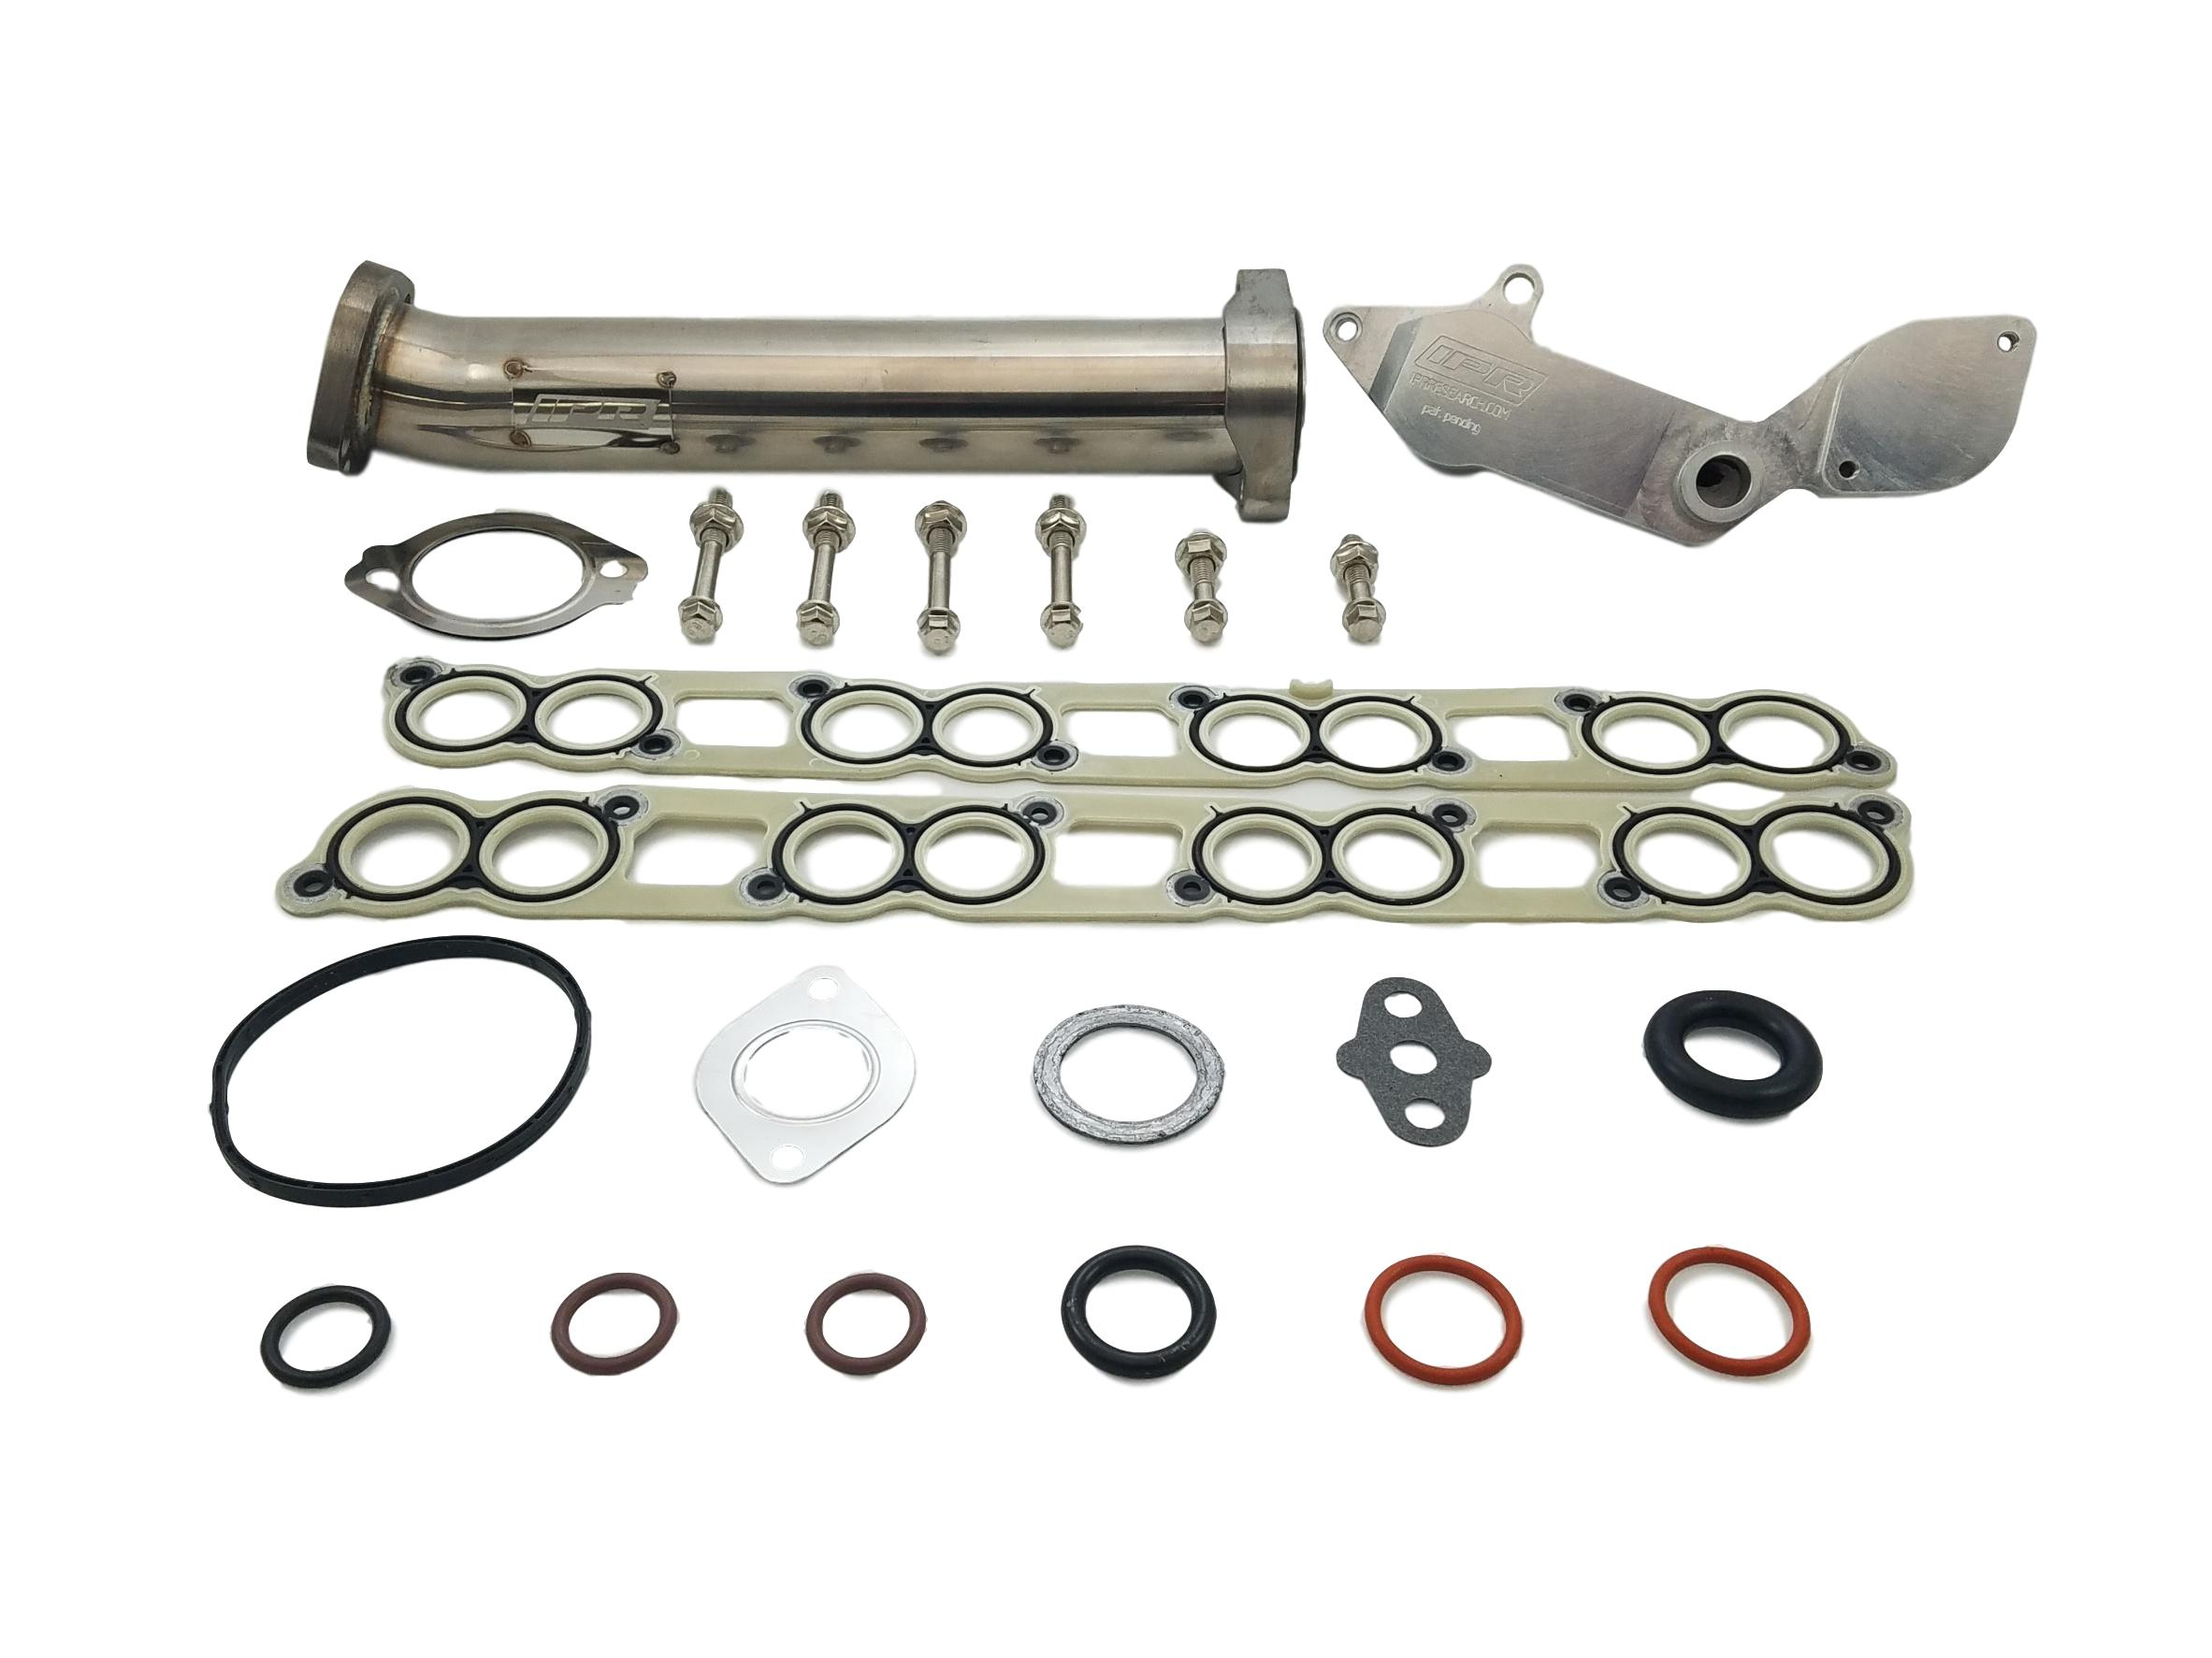 IPR GEN2 EGR Delete Kit, Includes Intake Gasket Kit for all 2003-2004 Ford Powerstroke 6.0 will fit F250, F350, F450